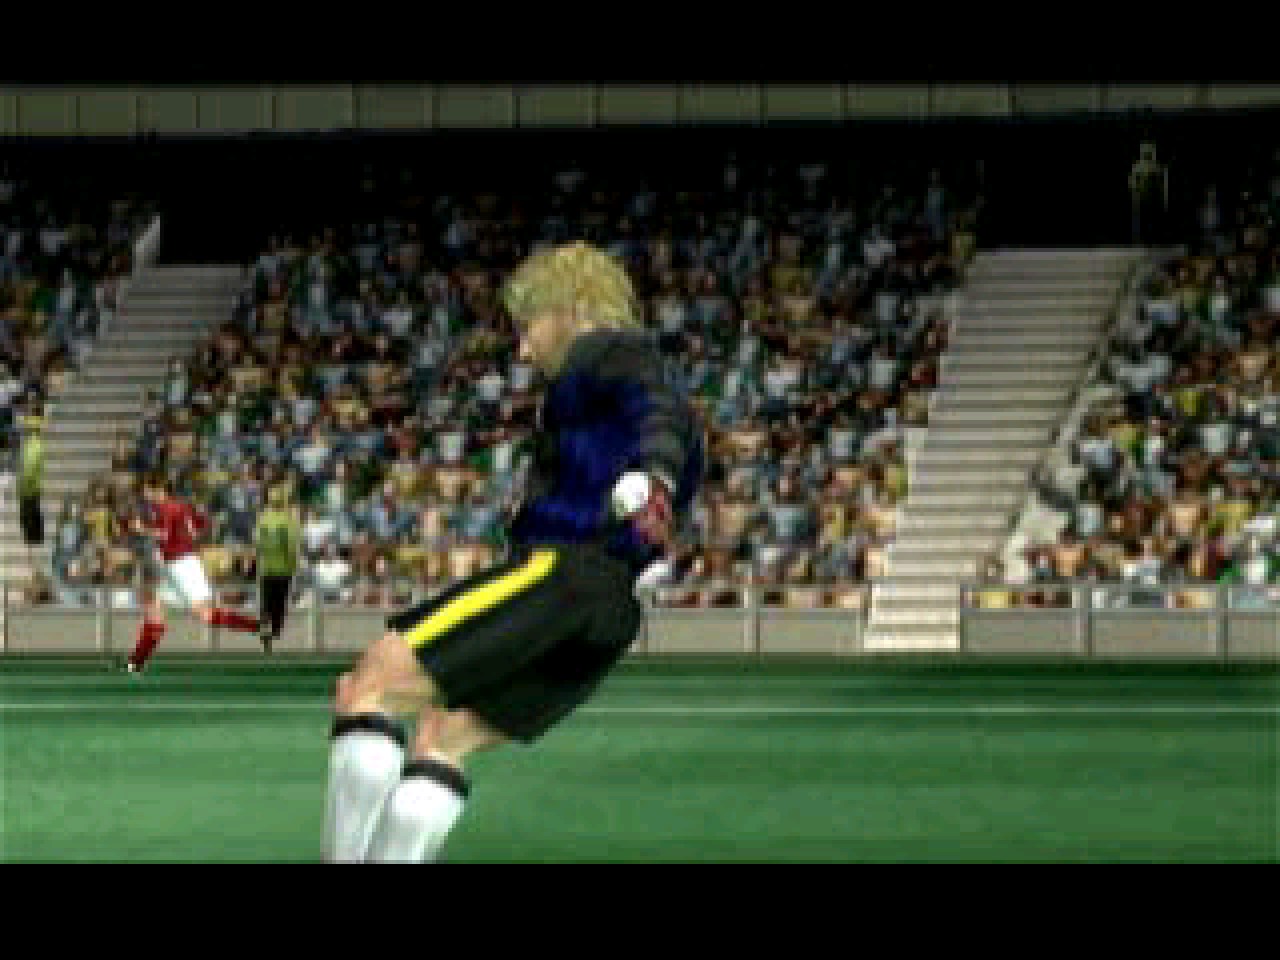 https://s3.eu-west-3.amazonaws.com/games.anthony-dessalles.com/FIFA 2001 PS1 2020 - Screenshots/FIFA 2001-201123-182445.png